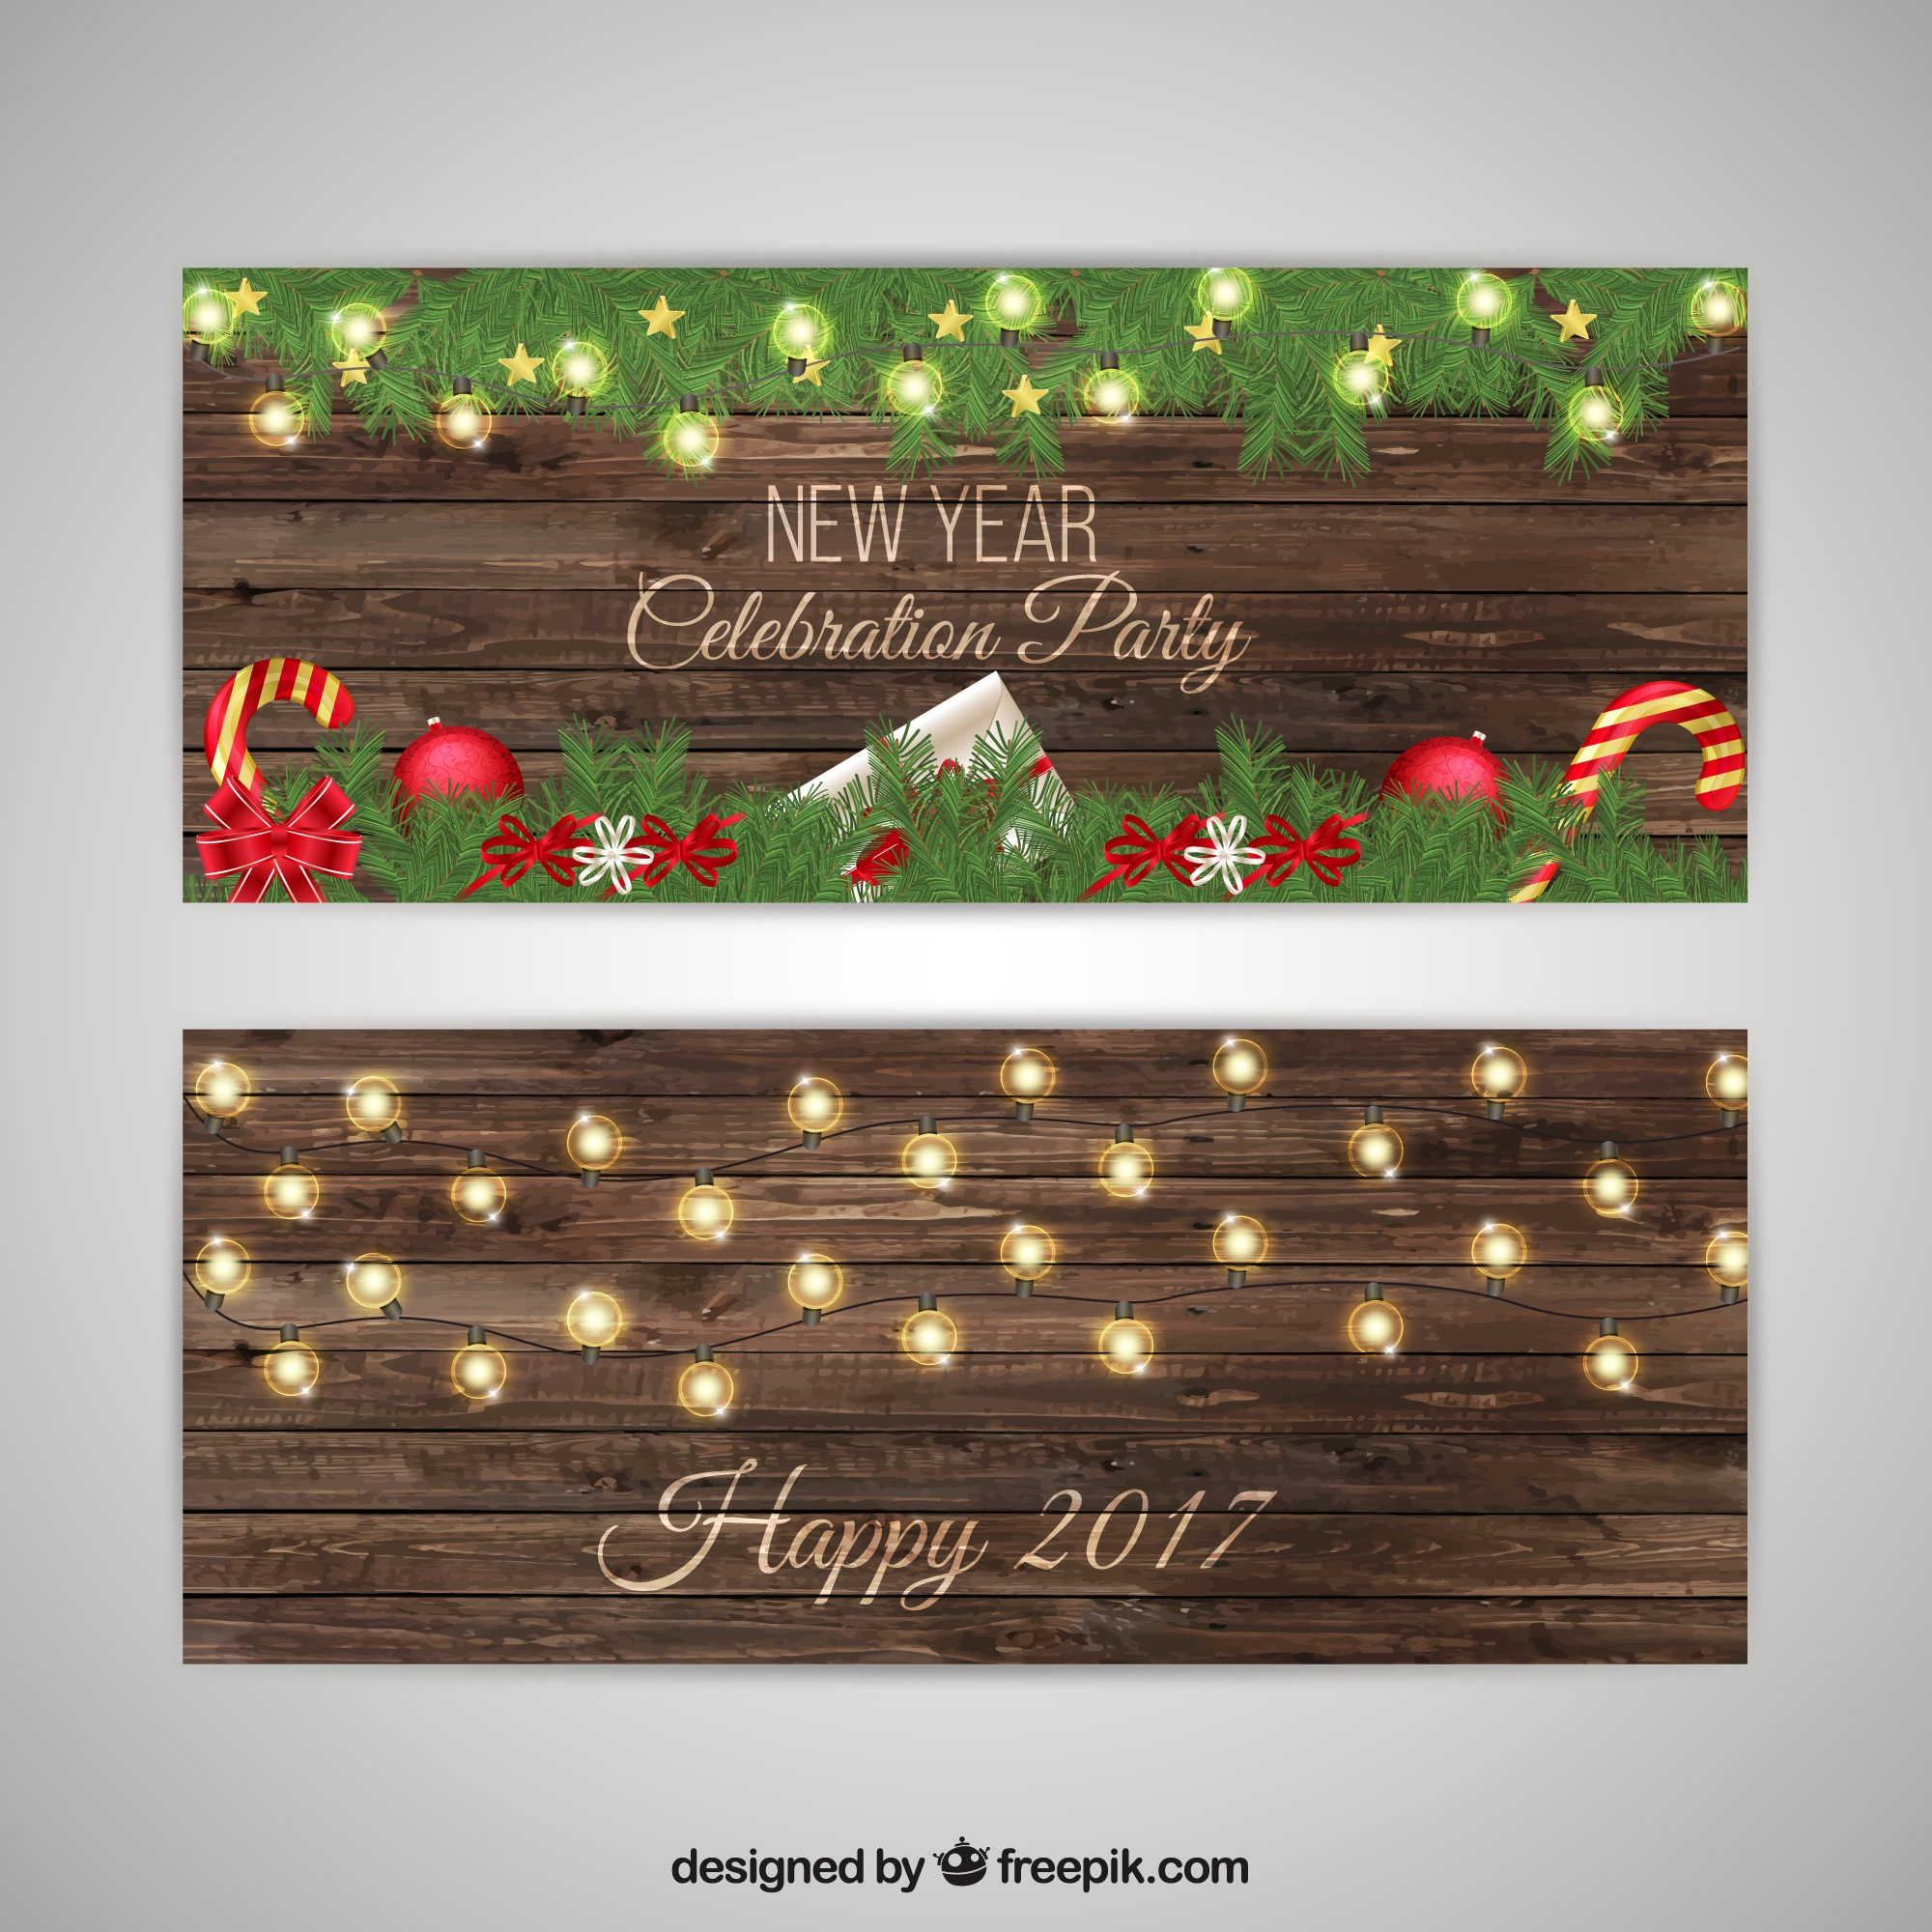 New Year Party Invitation Pack